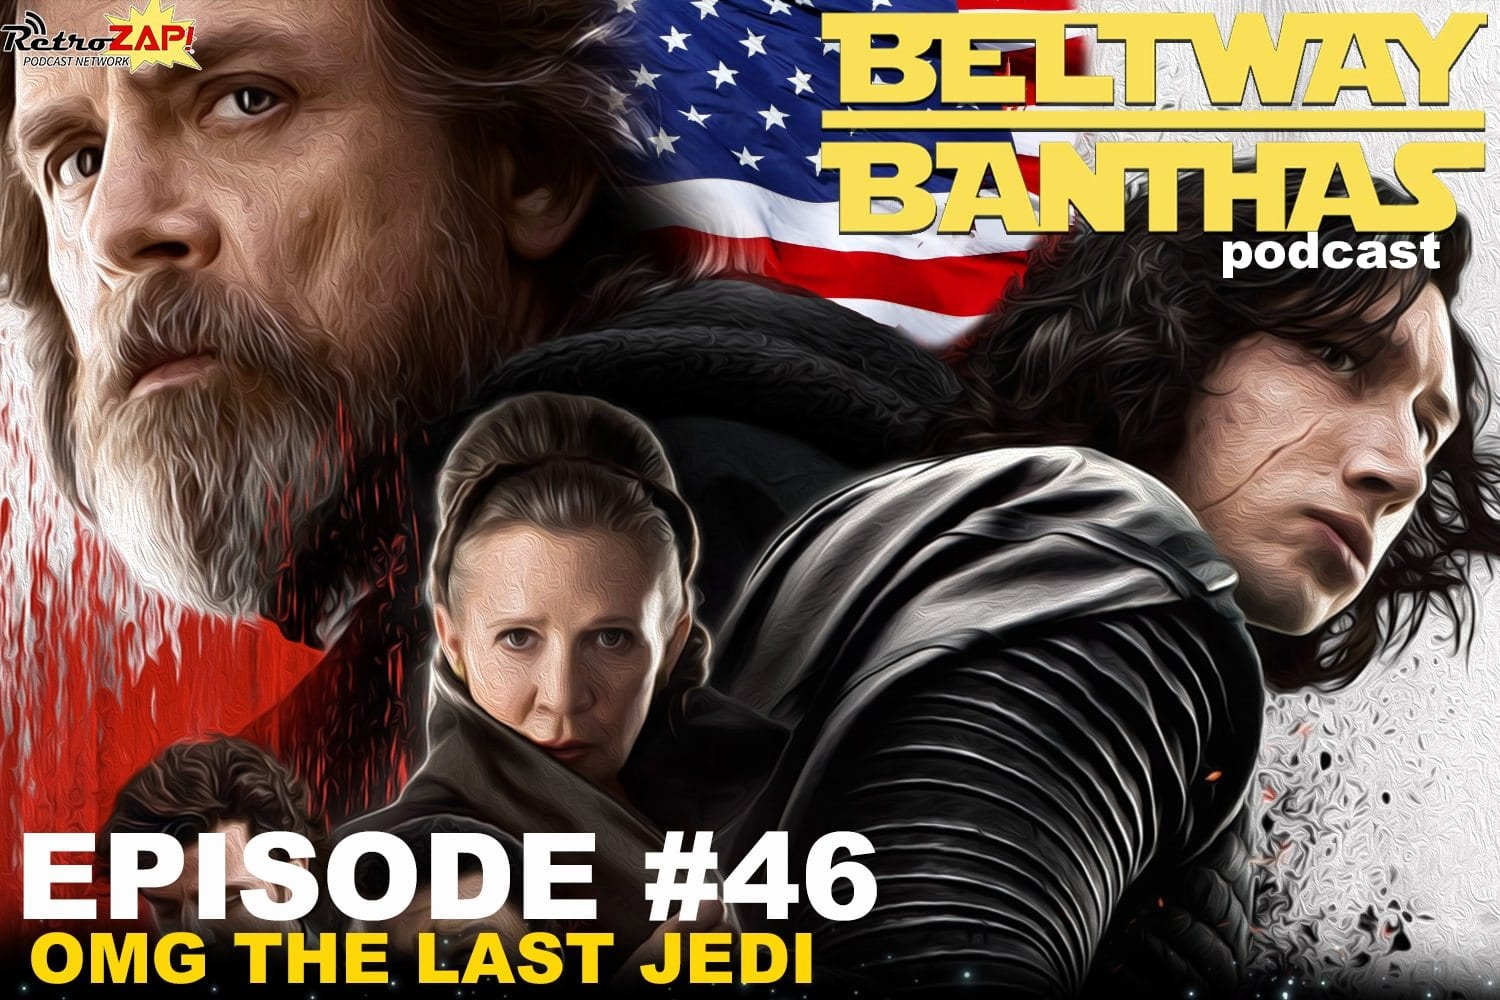 Beltway Banthas Episode #46: OMG The Last Jedi